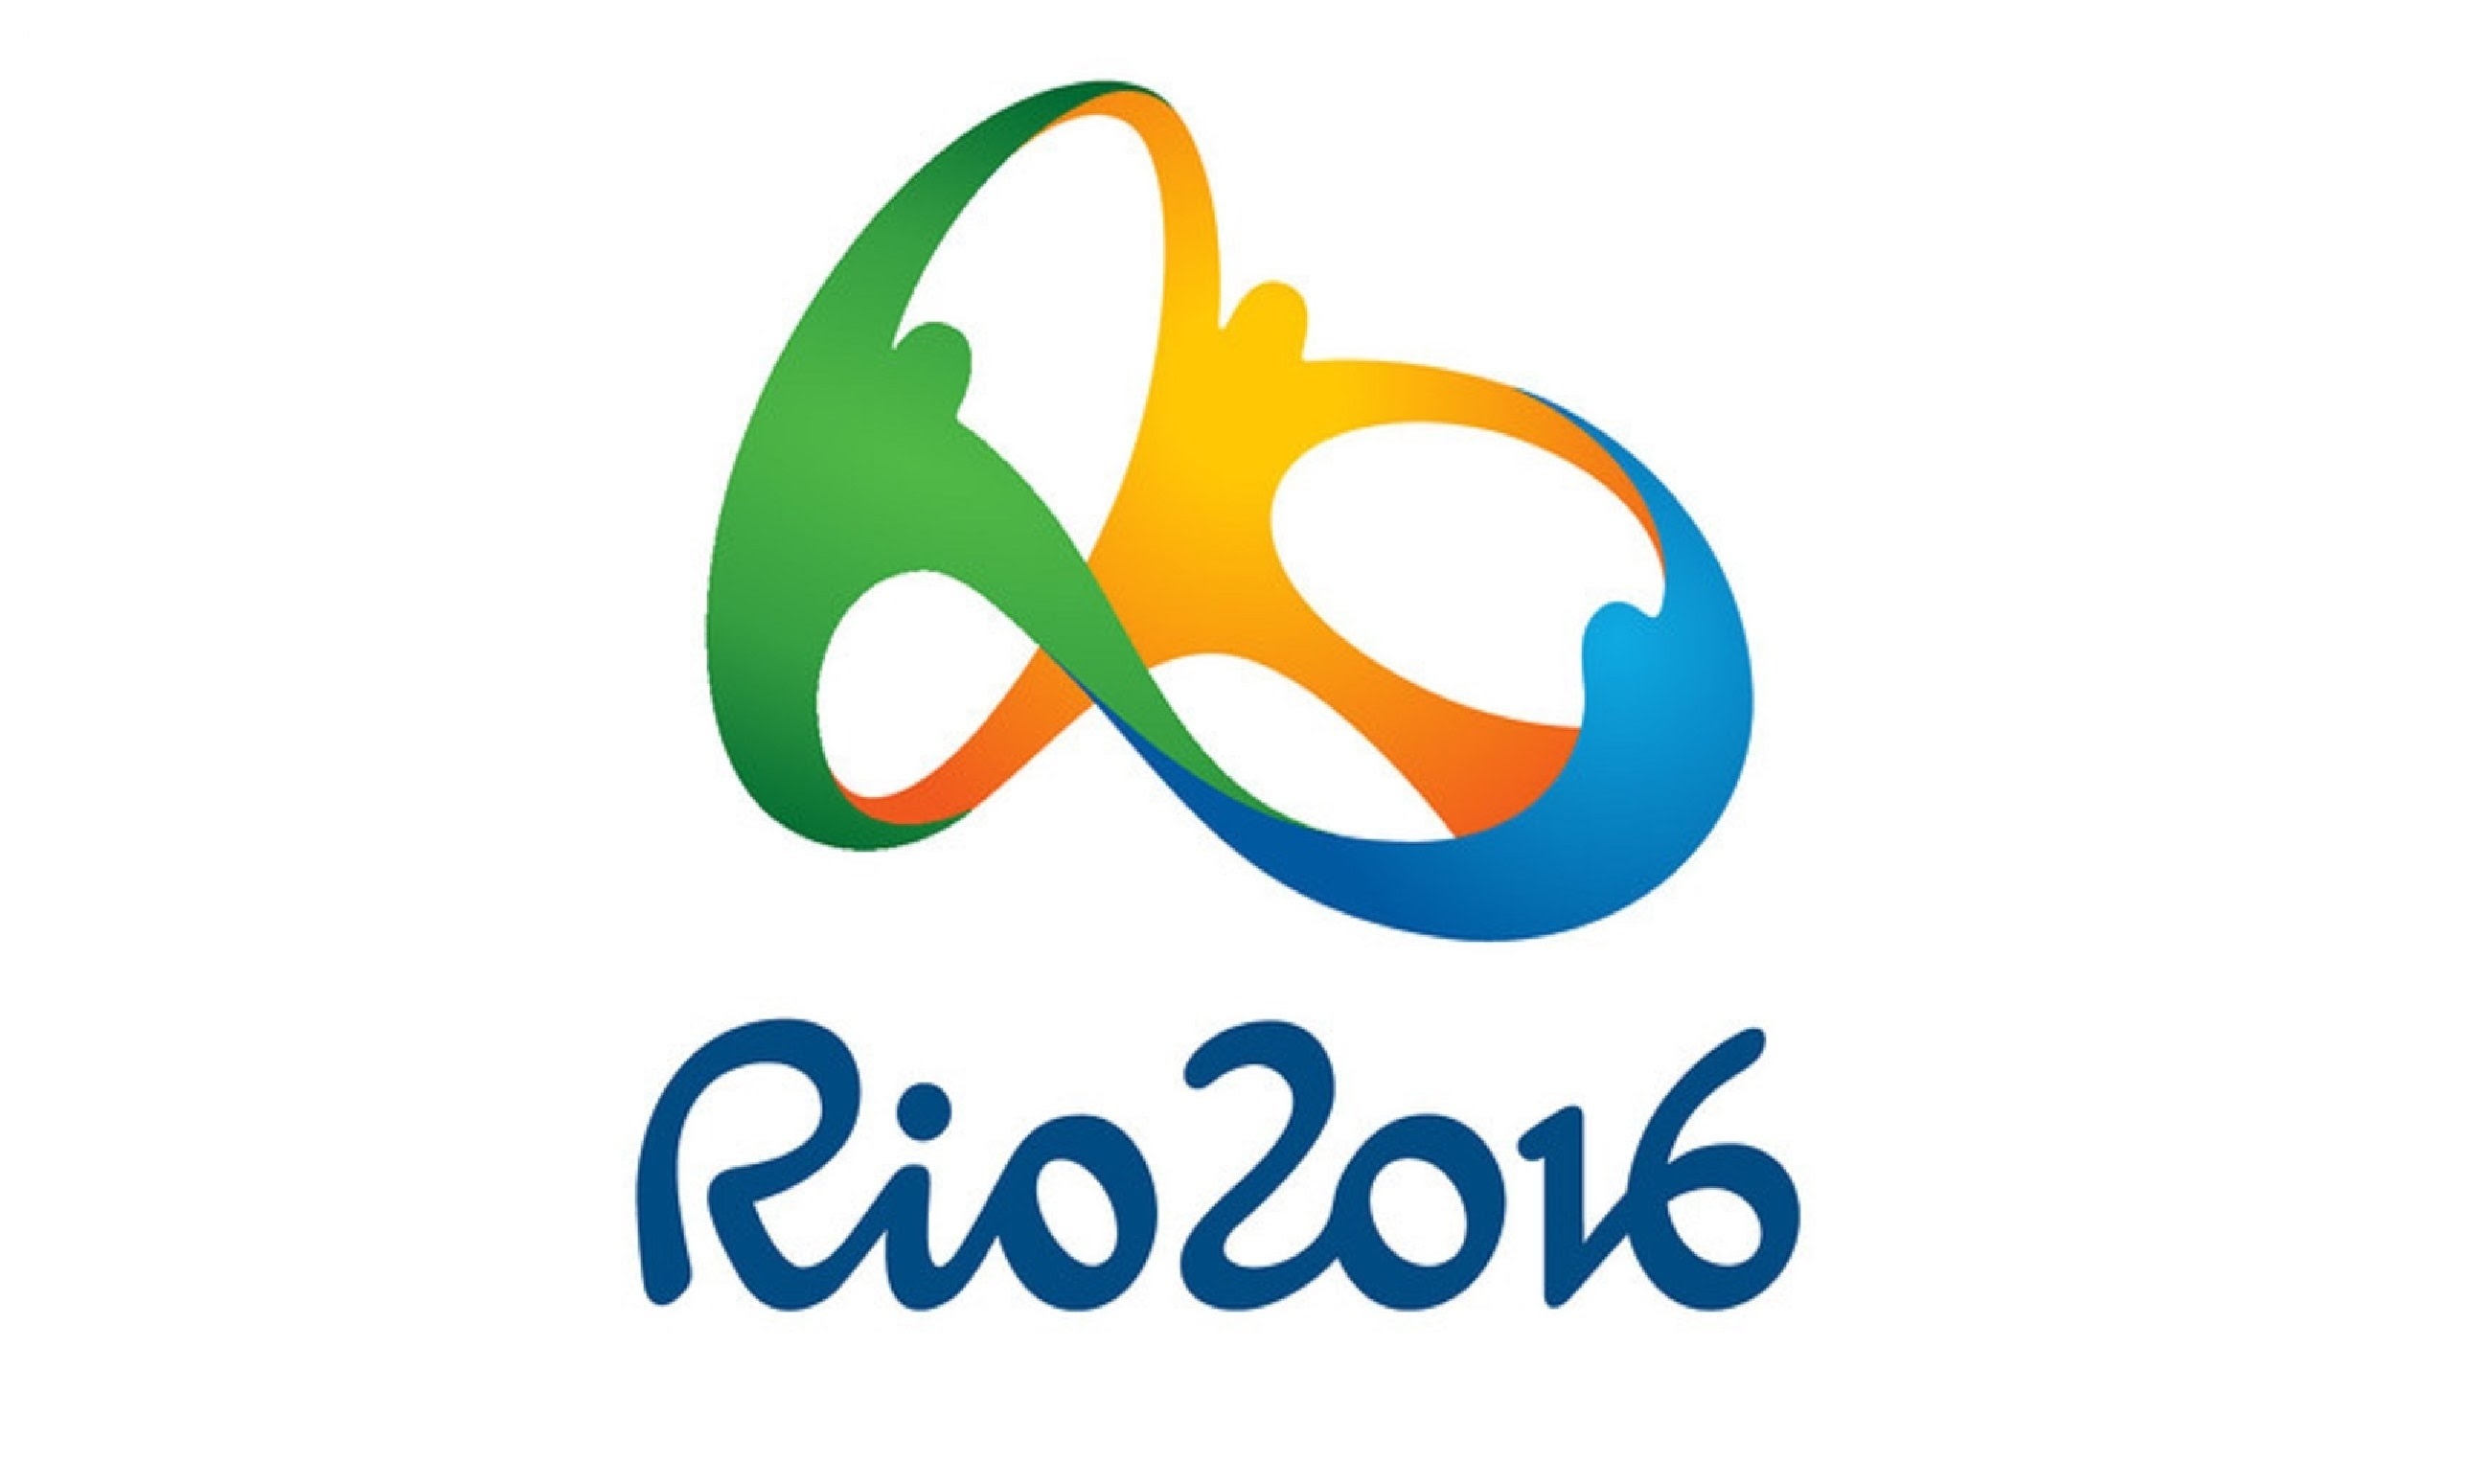 The Olympic Games Rio 2016 Logo And Typeface